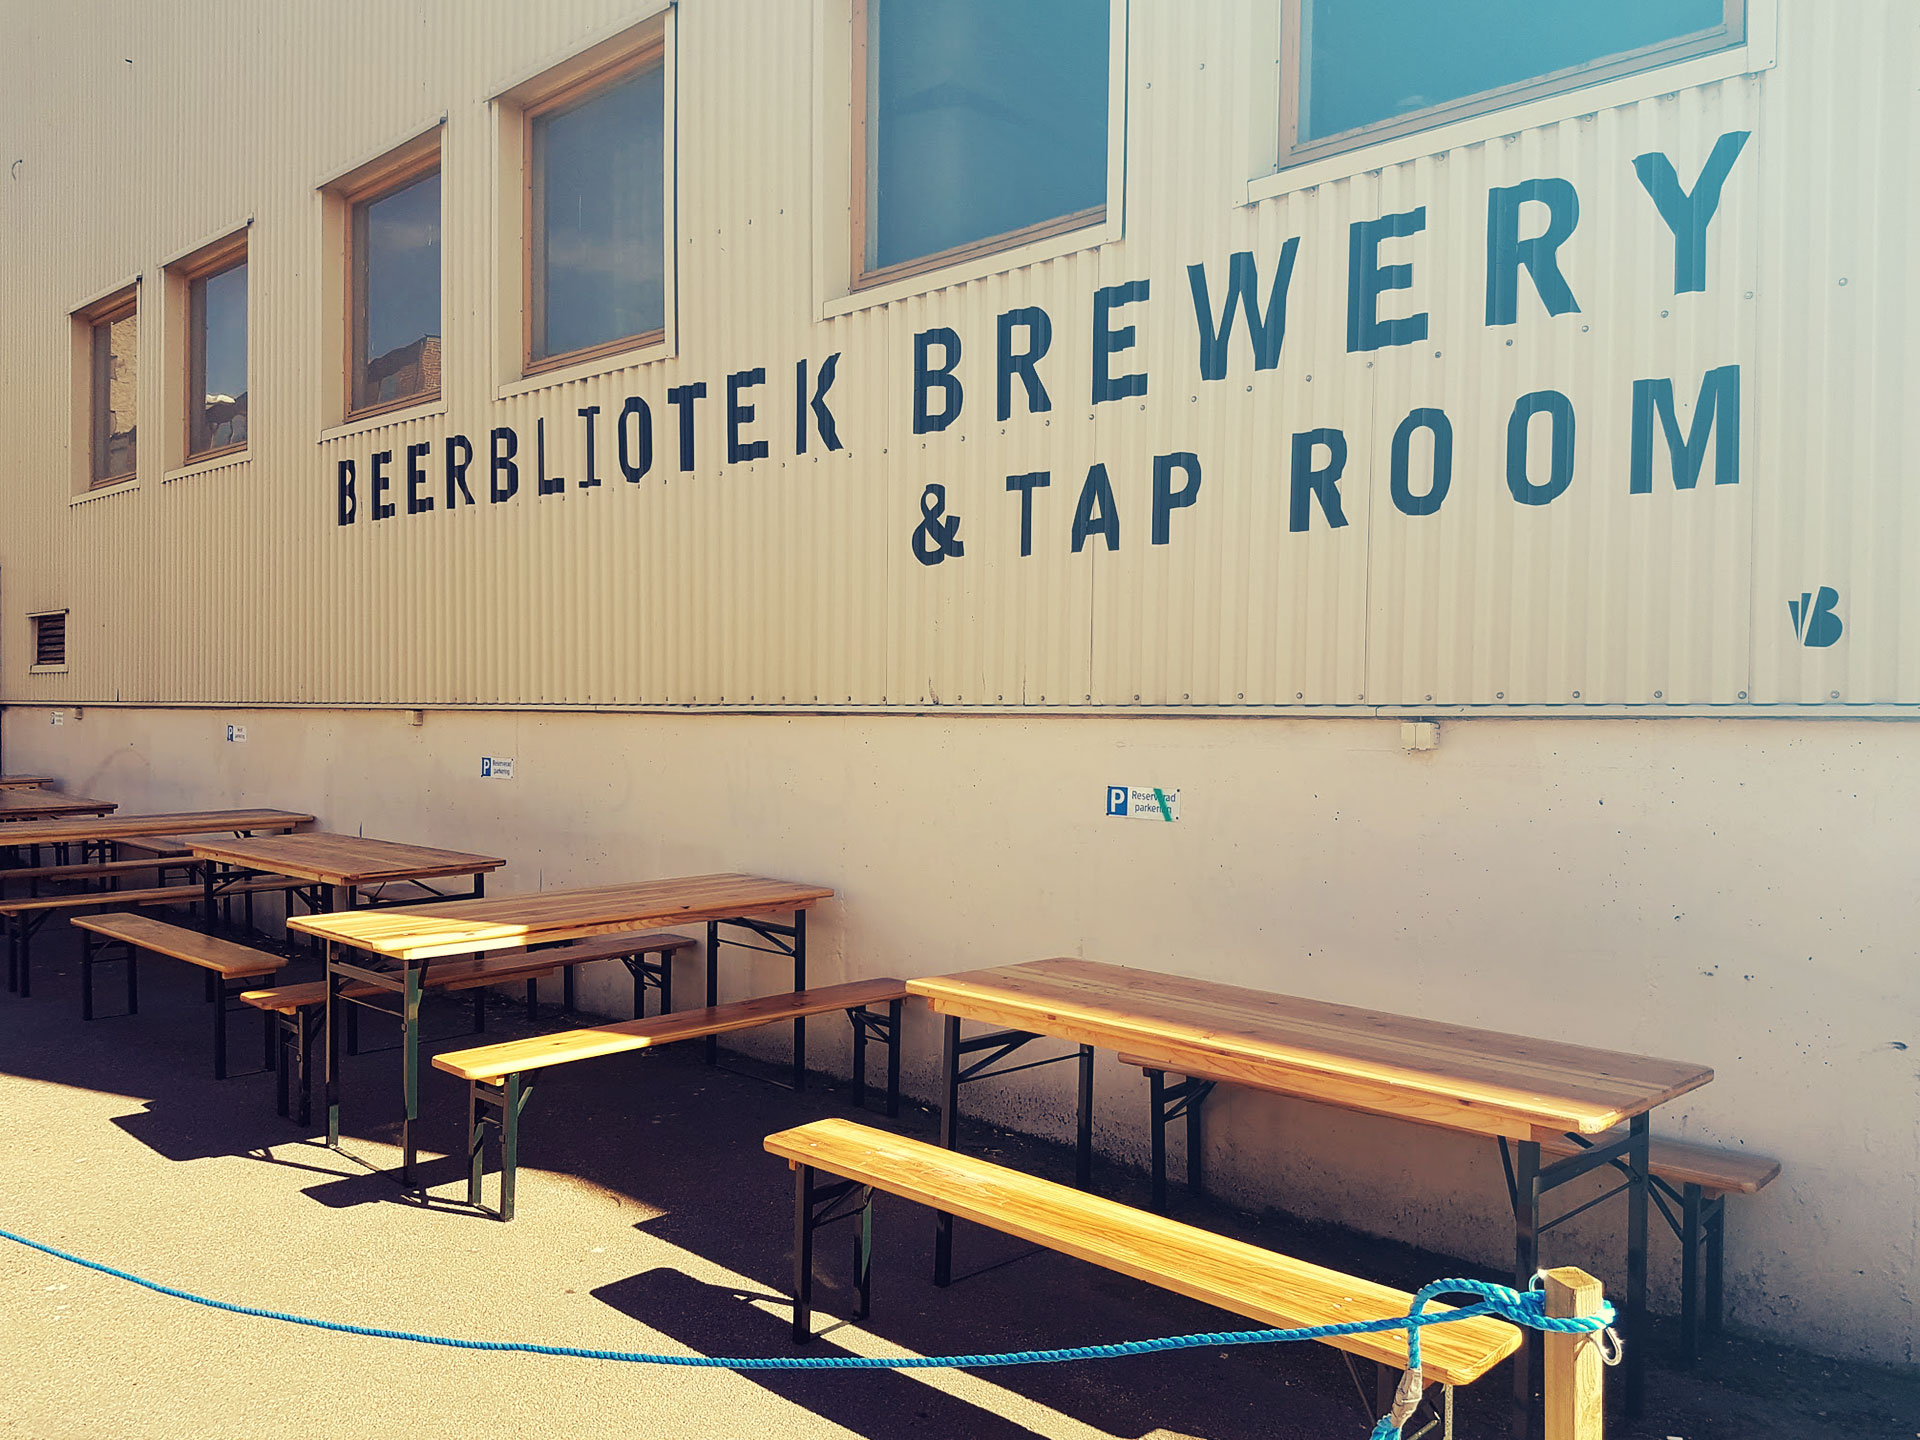 Beerbliotek Brewery & Tap Room outside, with signage, tables and chairs, just before an event.